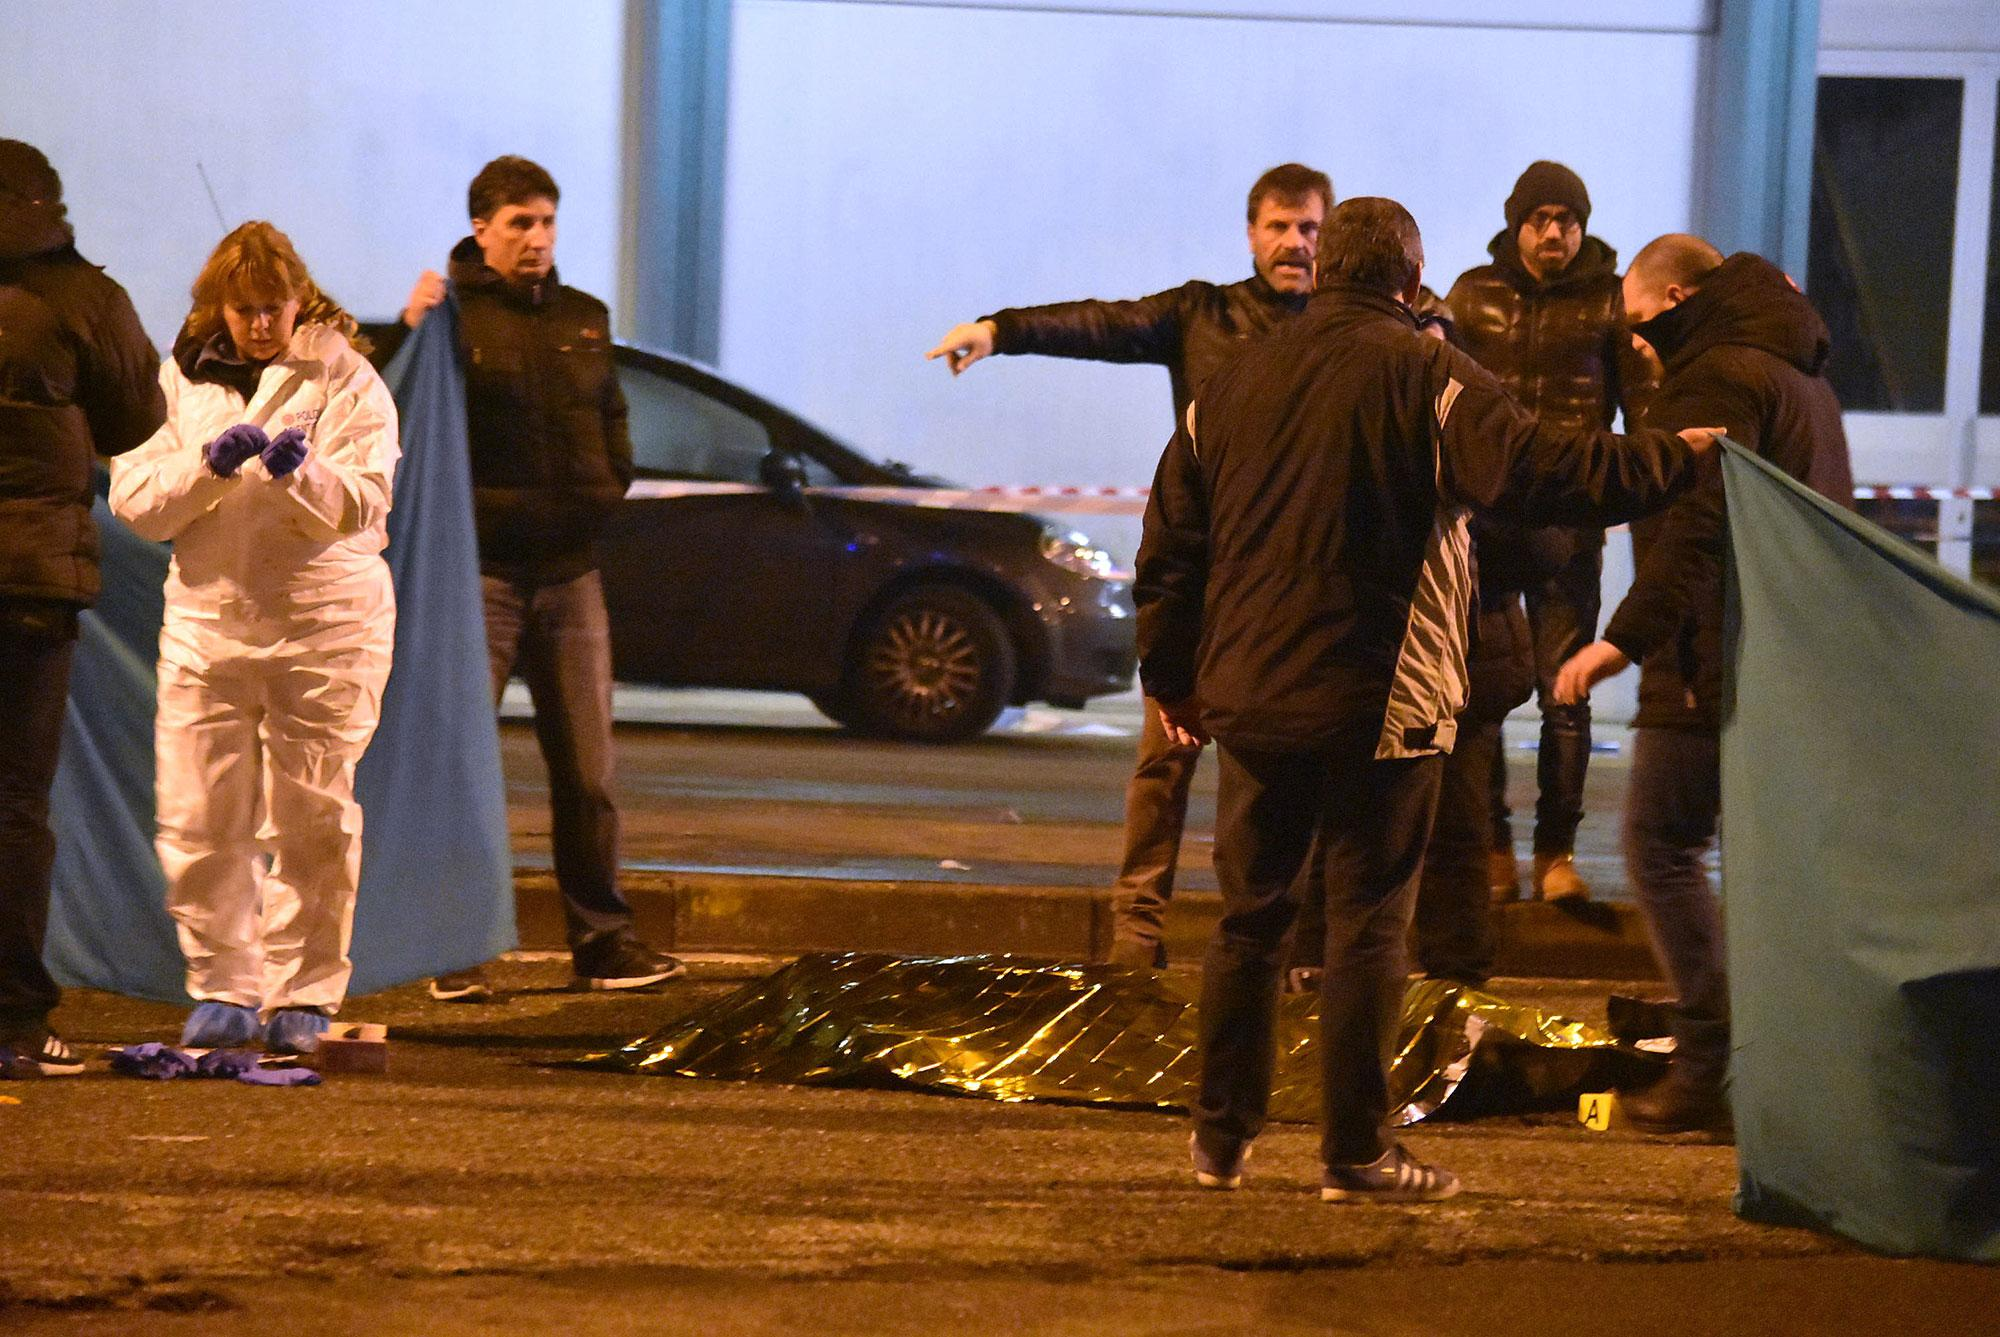 """<p>A body is covered in a thermical blanket as Italian police cordon off an area after a shootout between police and a man in Milan's Sesto San Giovanni neighborhood, early Friday, Dec. 23, 2016. Italy's interior minister Marco Minniti says the man killed in an early-hours shootout in Milan is """"without a shadow of doubt"""" the Berlin Christmas market attacker Anis Amri. (Photo: Daniele Bennati/AP) </p>"""